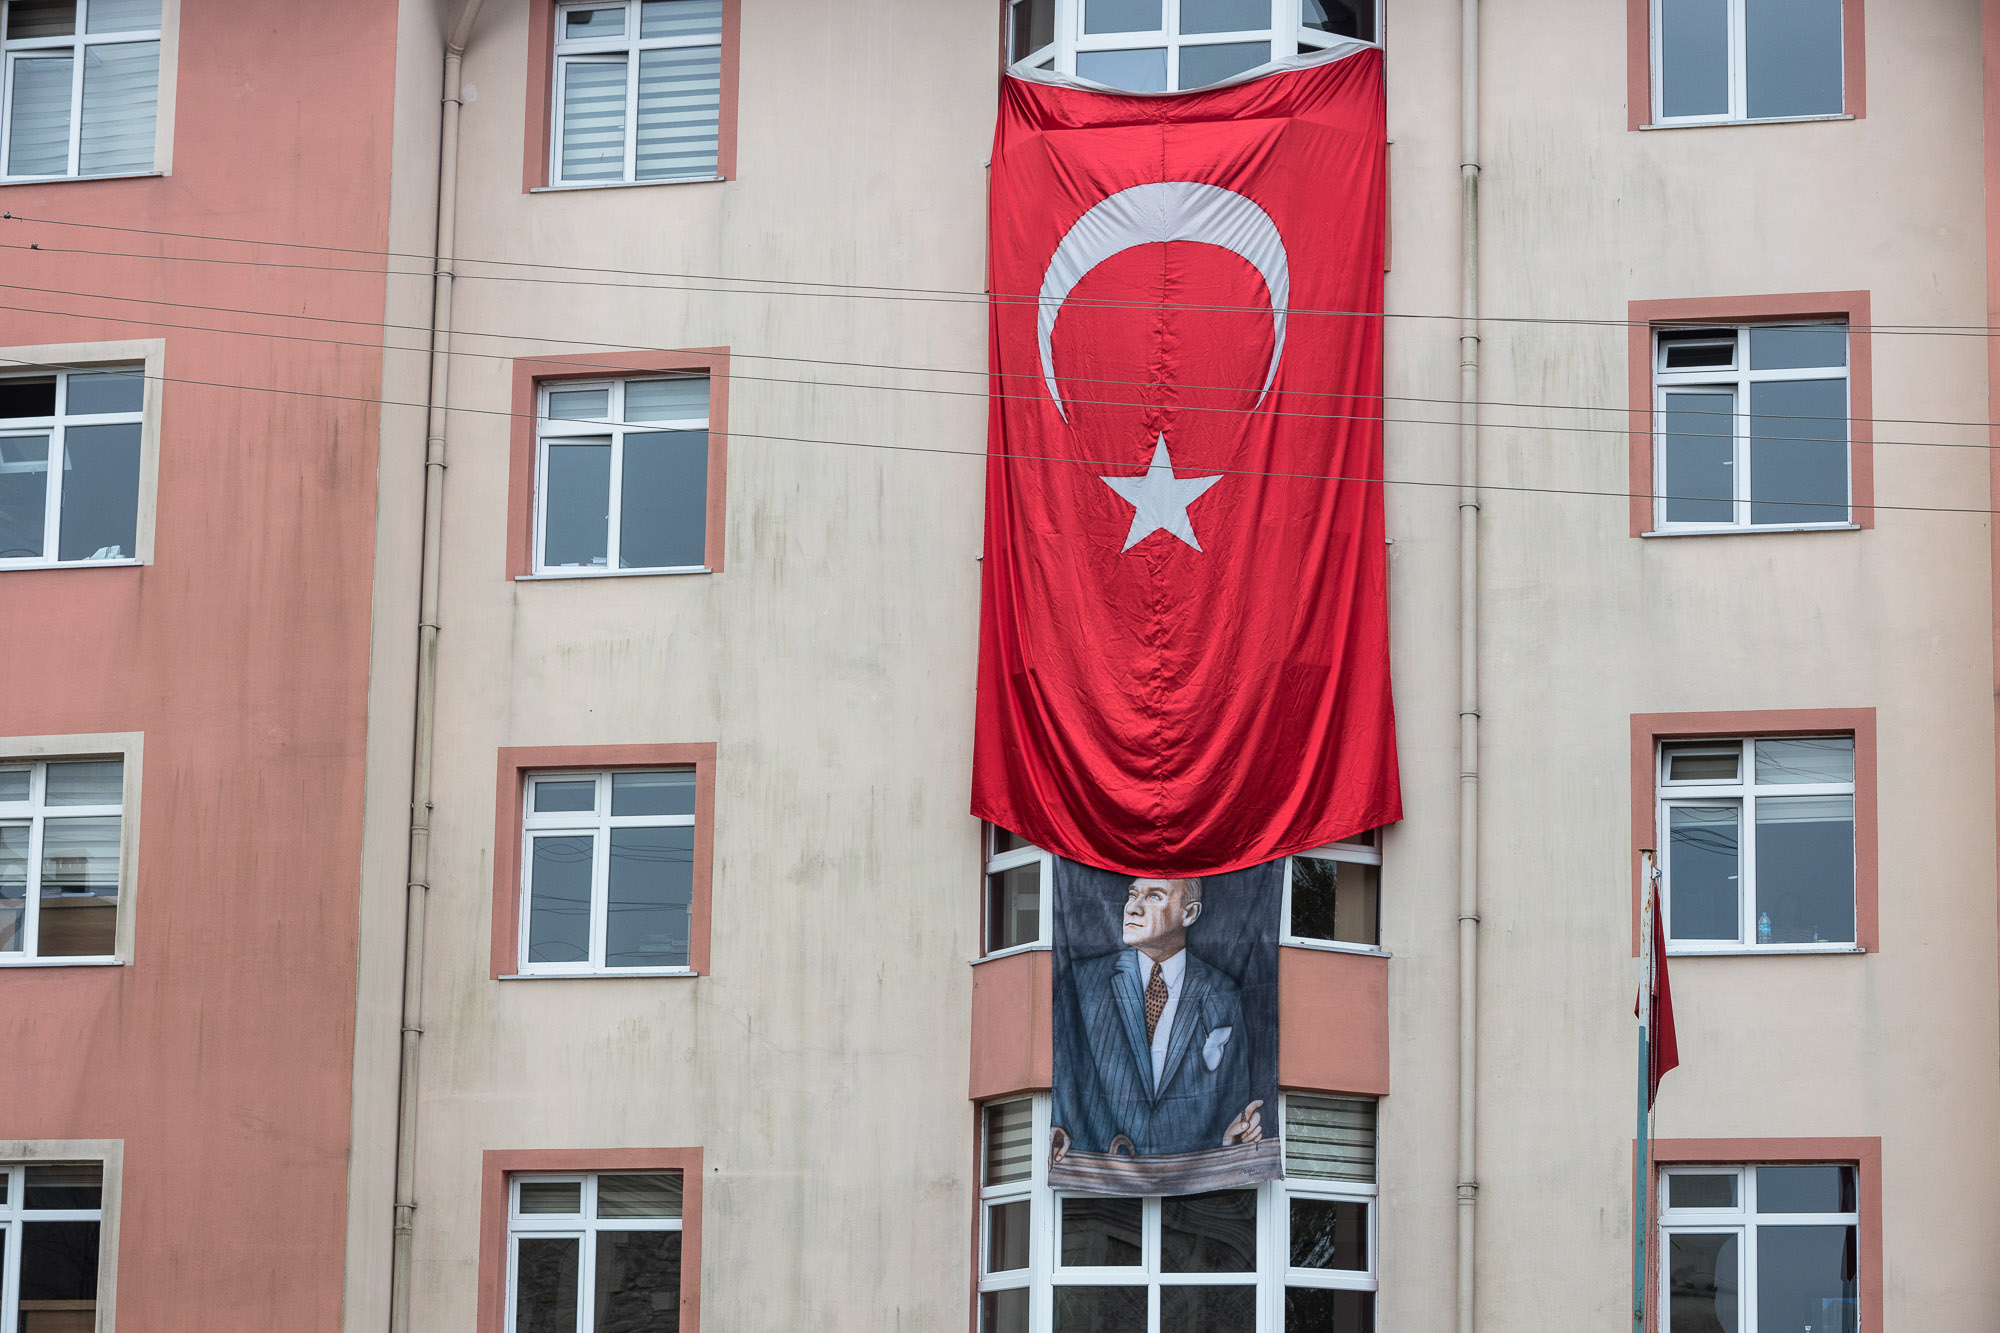 Atatürk and flag